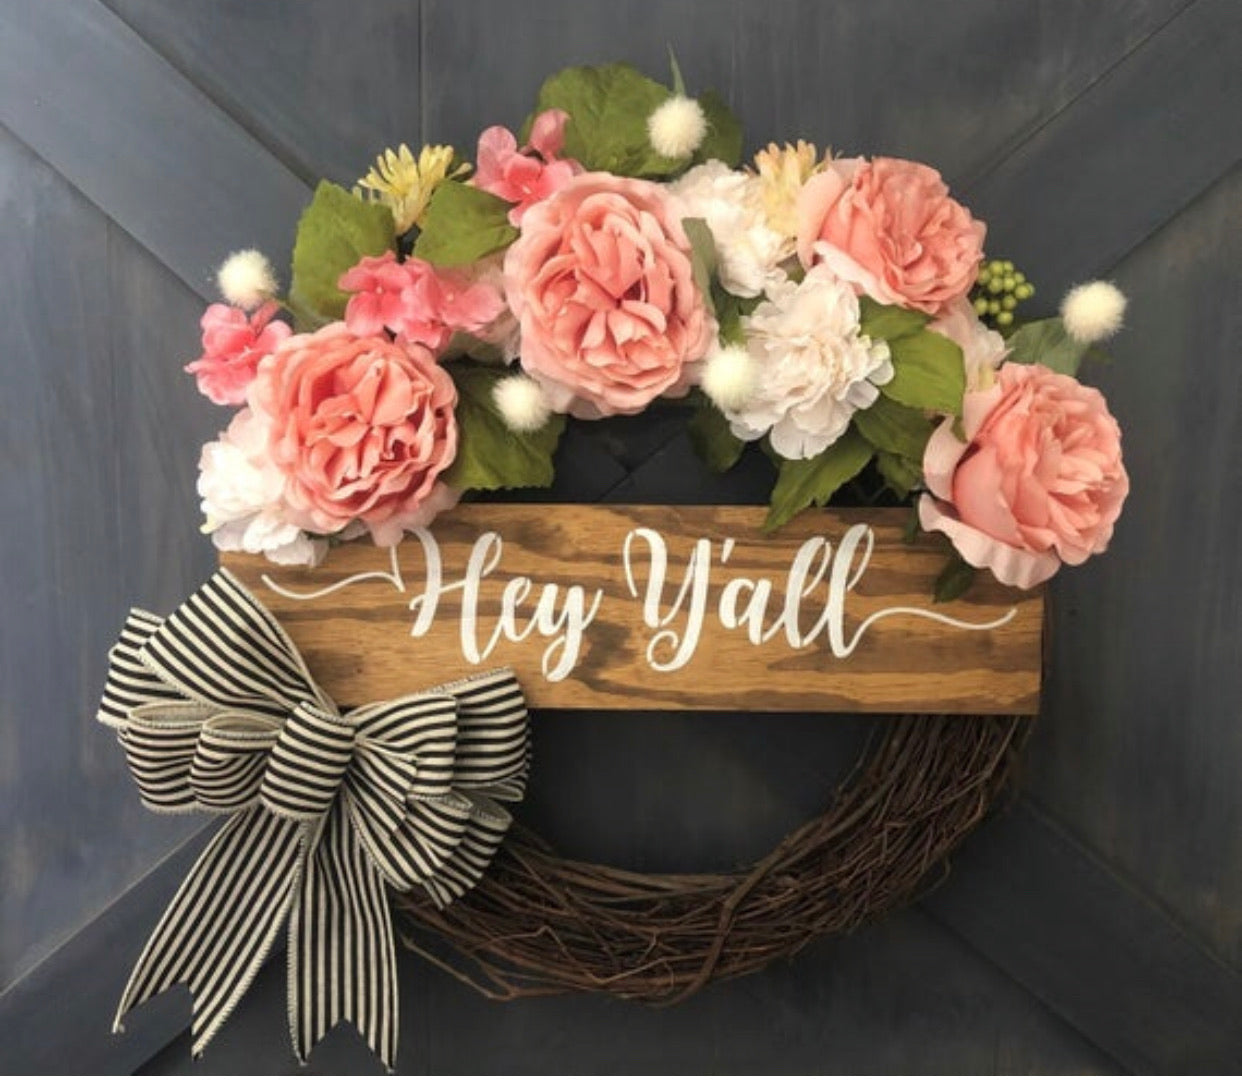 Farmhouse Hey Y'all Wreath